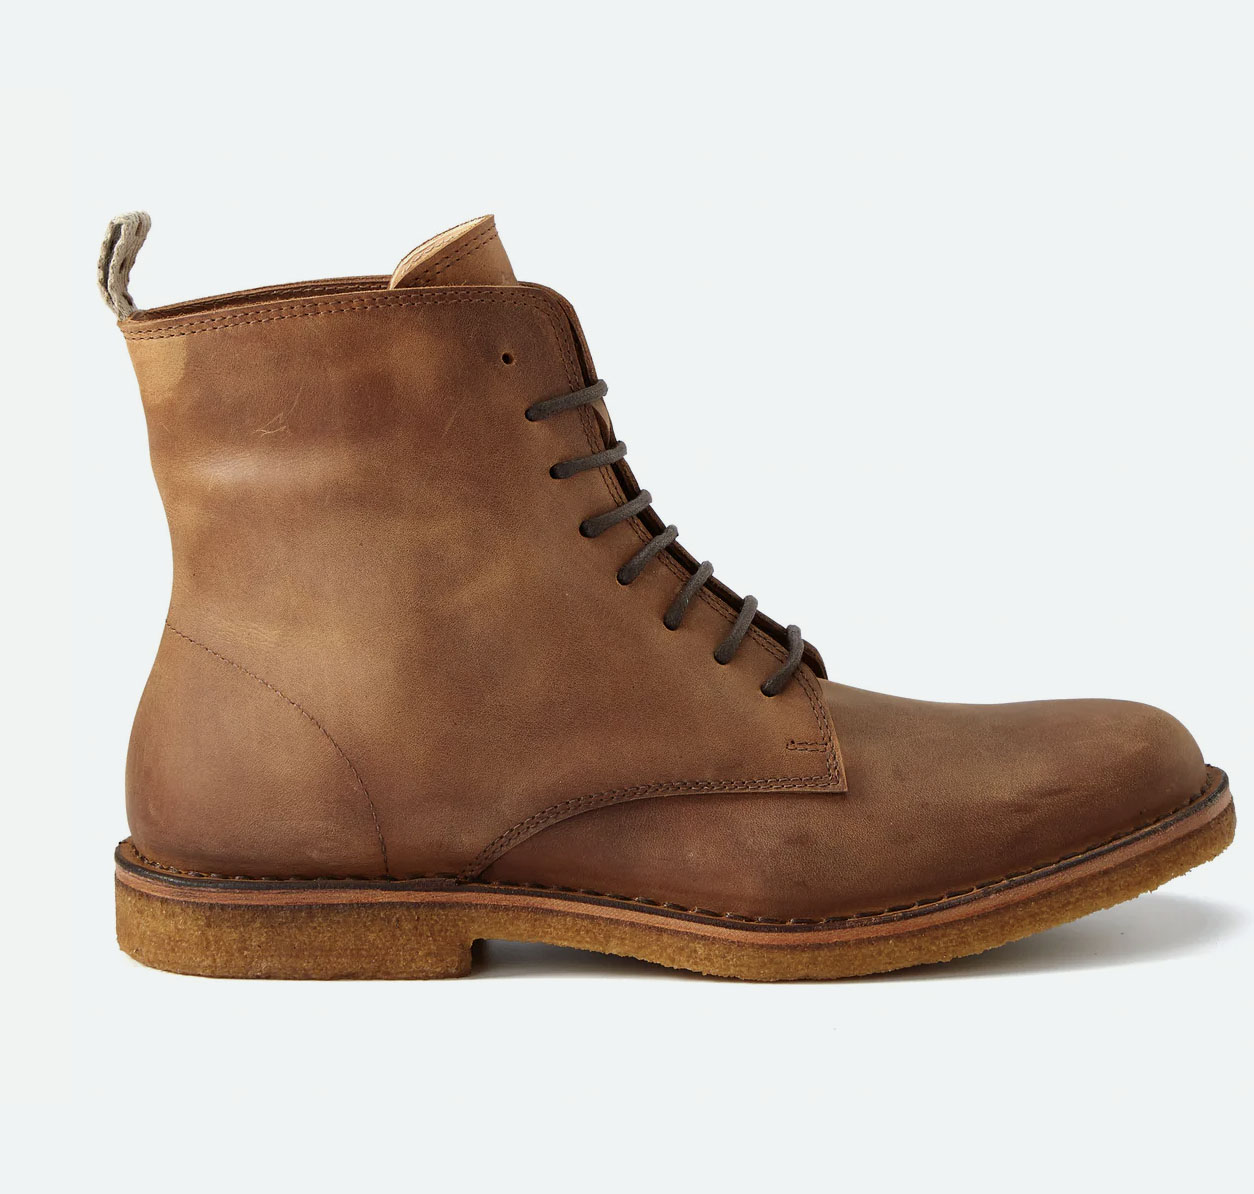 brown lace up boots for men from huckberry